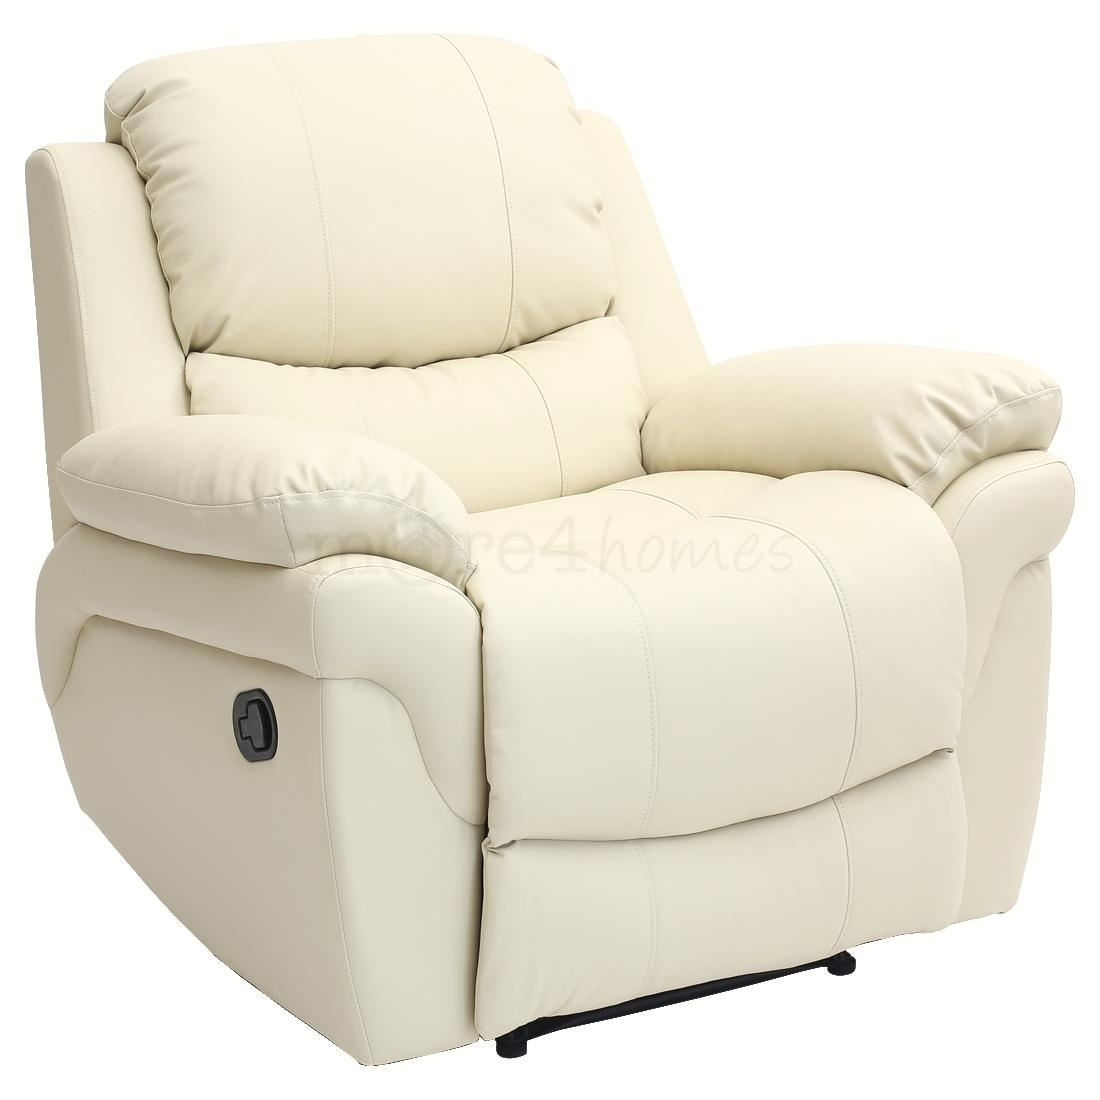 recliner club chair 50s kitchen table and chairs madison cream real leather armchair sofa home